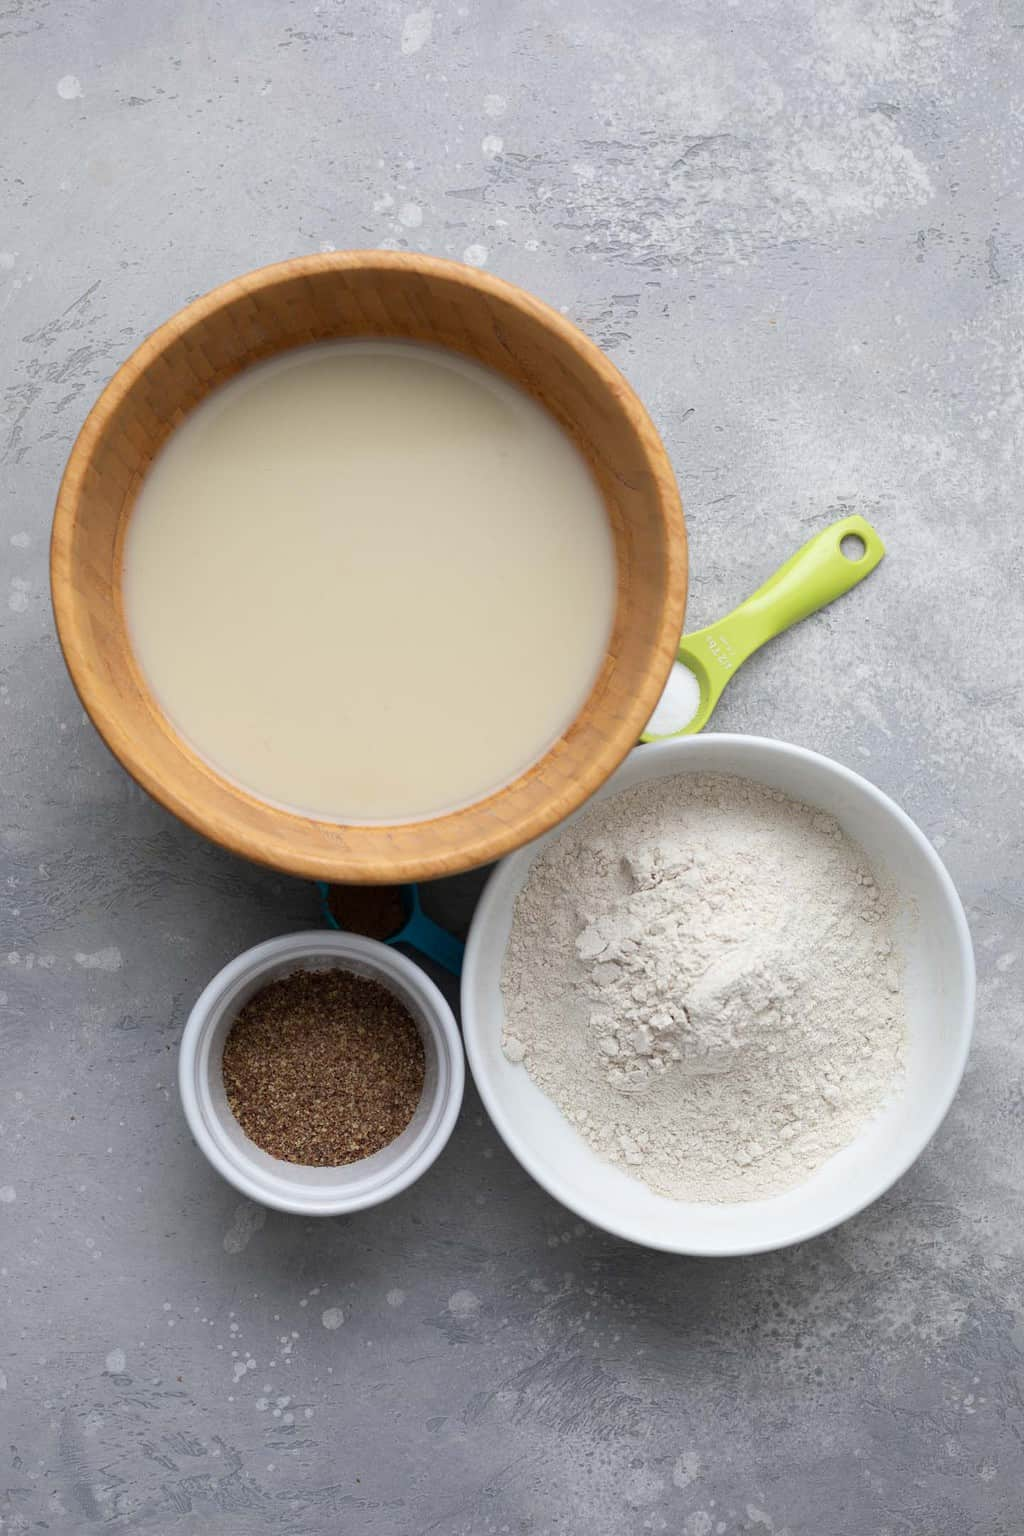 Ingredients for vegan buckwheat crepes